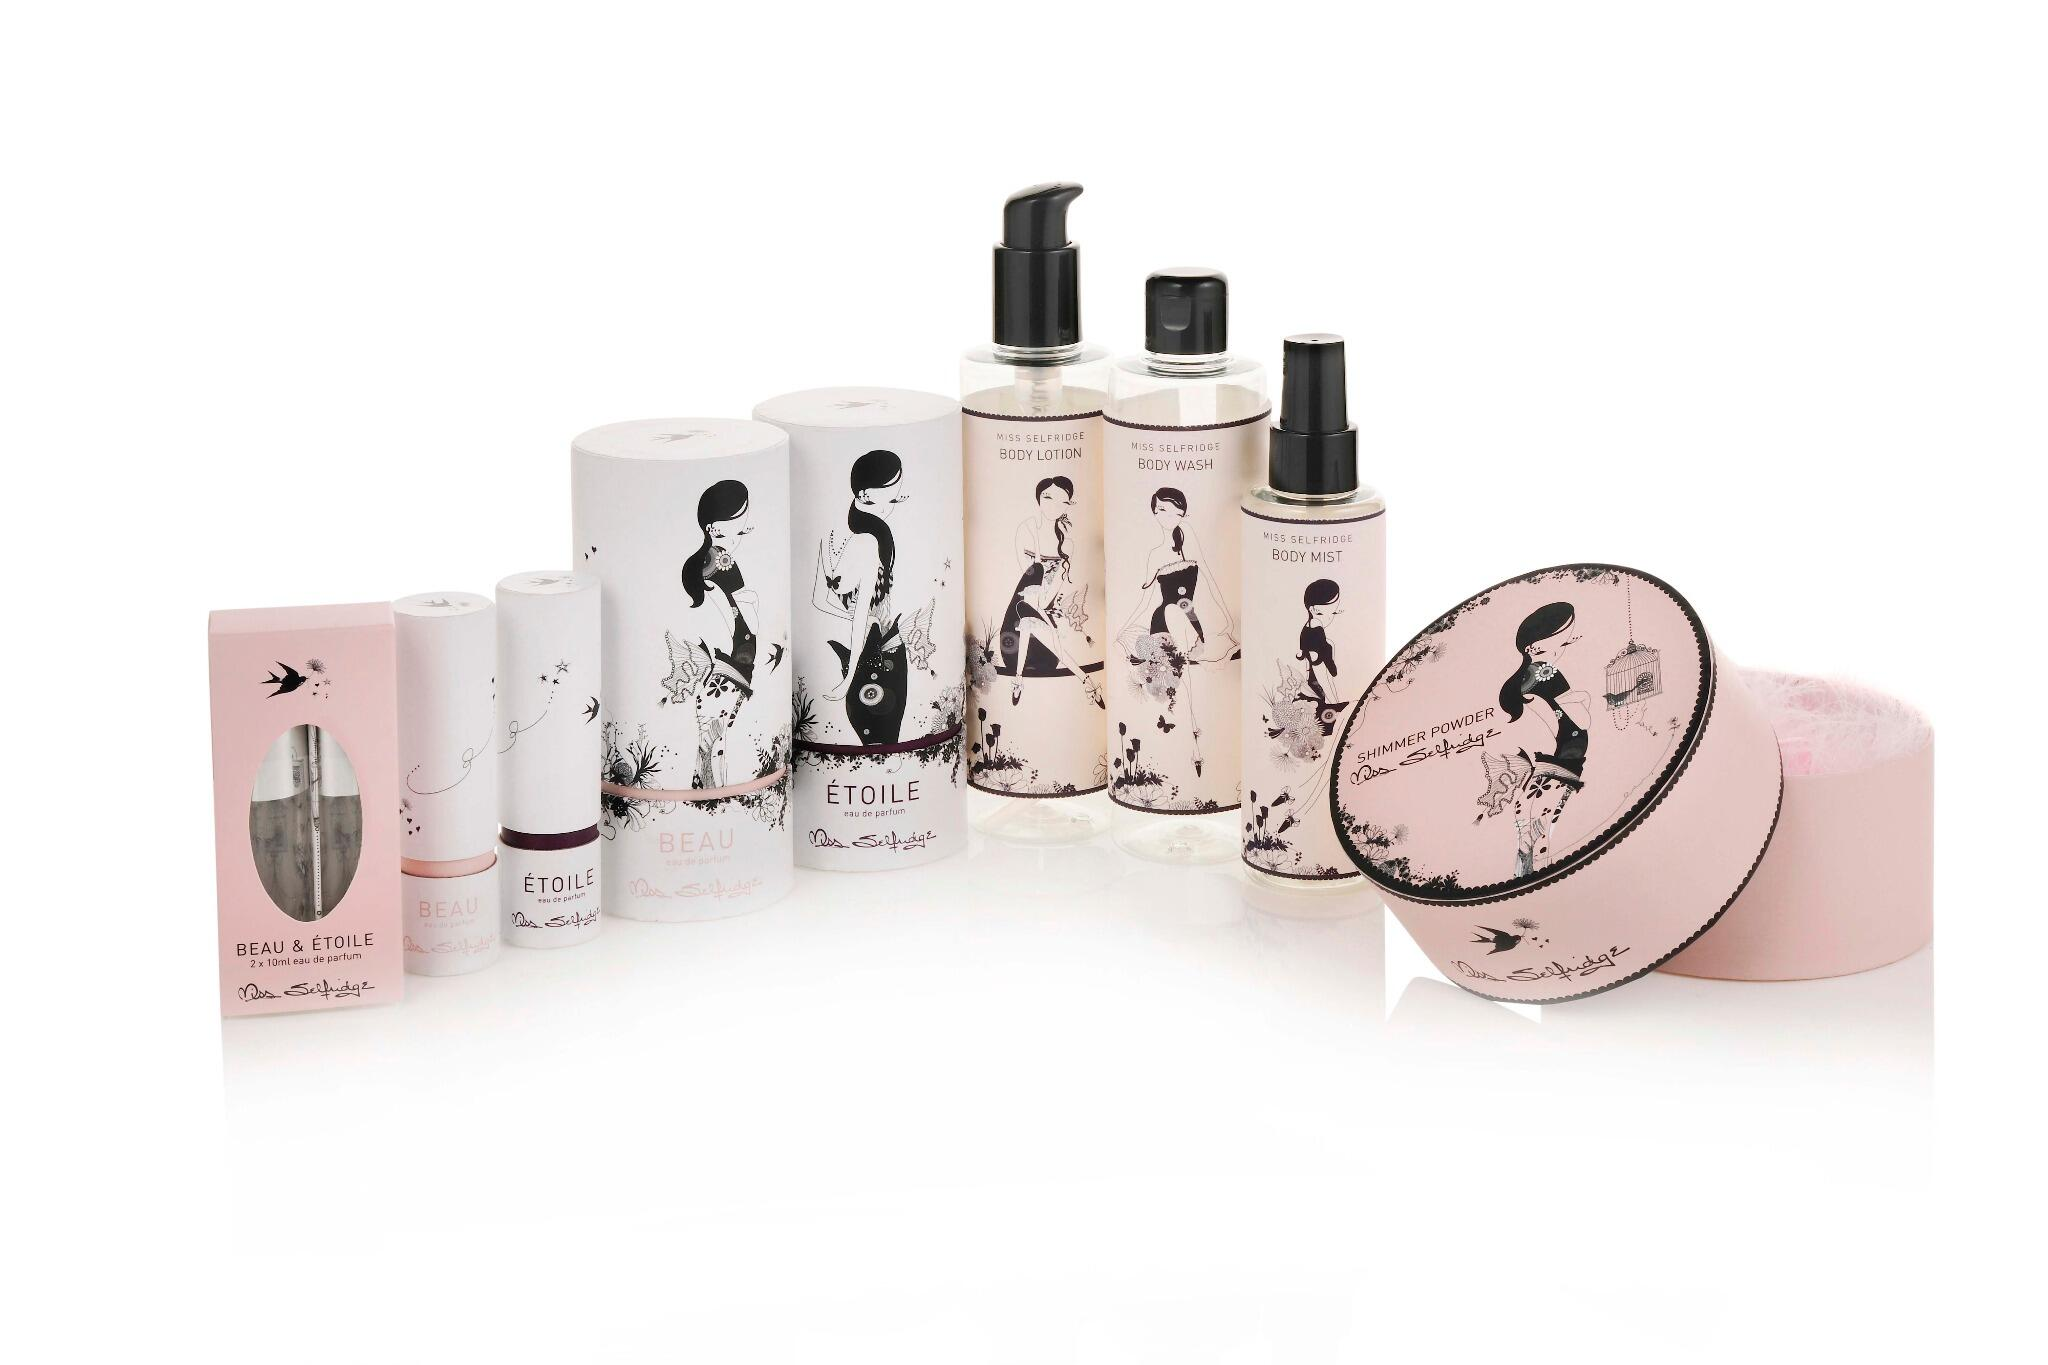 We're offering 1 reader the chance to win a goody bag filled with products from Miss Selfridge fragrance & body line http://t.co/q371p3xwNb